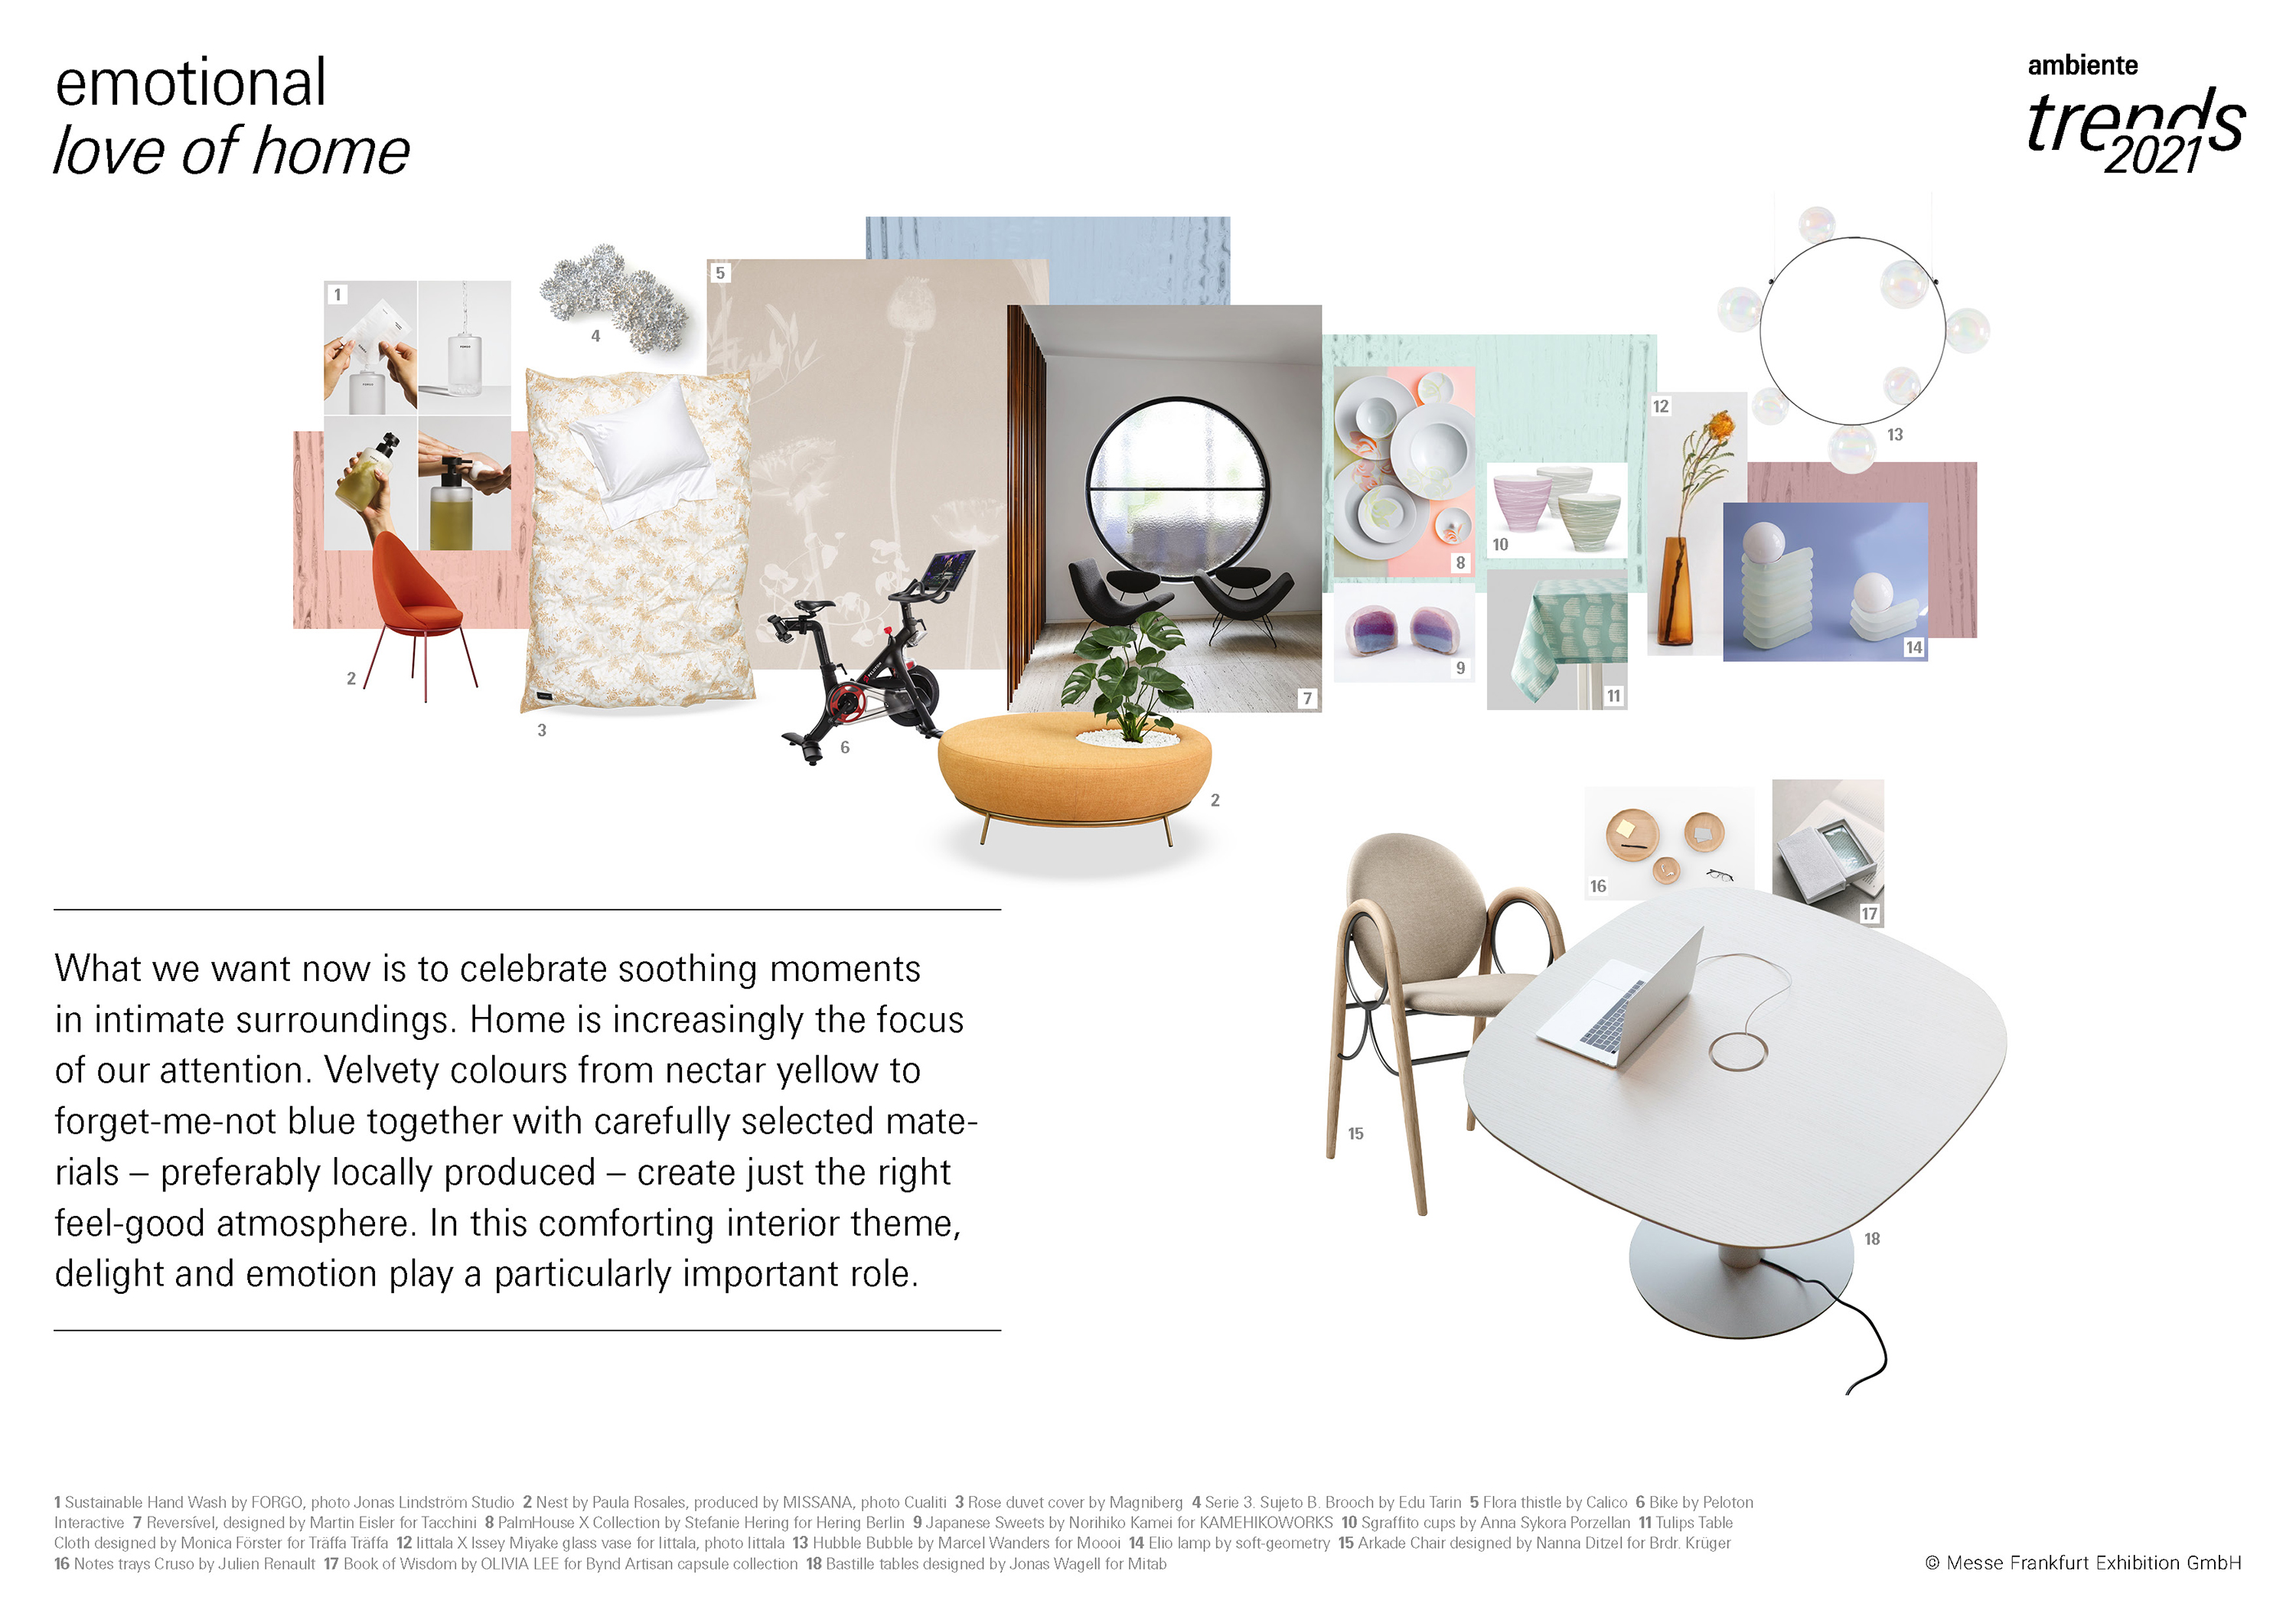 Ambiente Trends 2021 / emotional. love of home